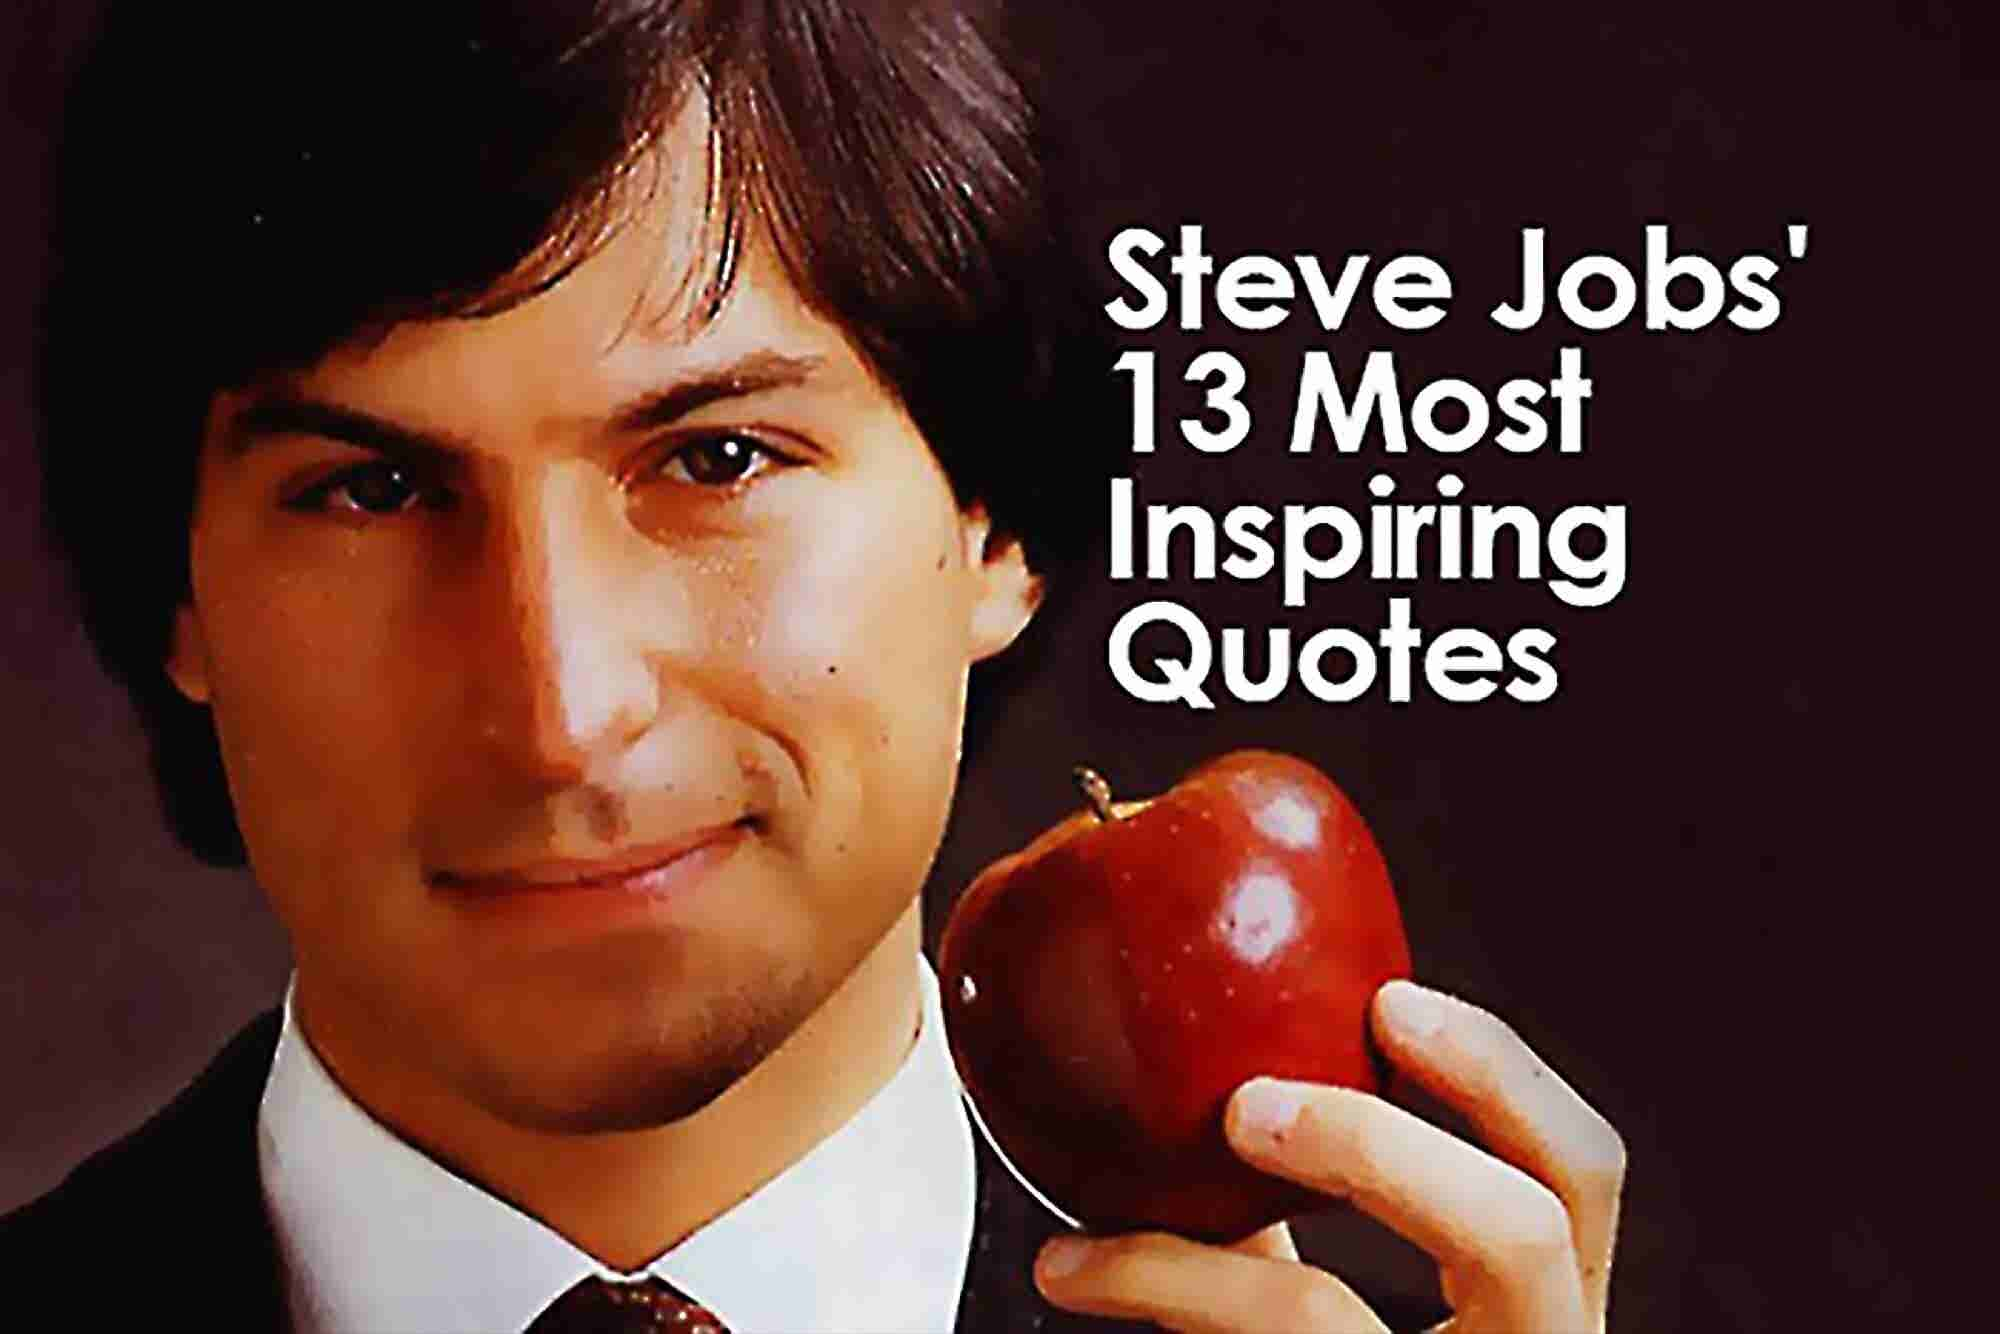 Steve Jobs' 13 Most Inspiring Quotes